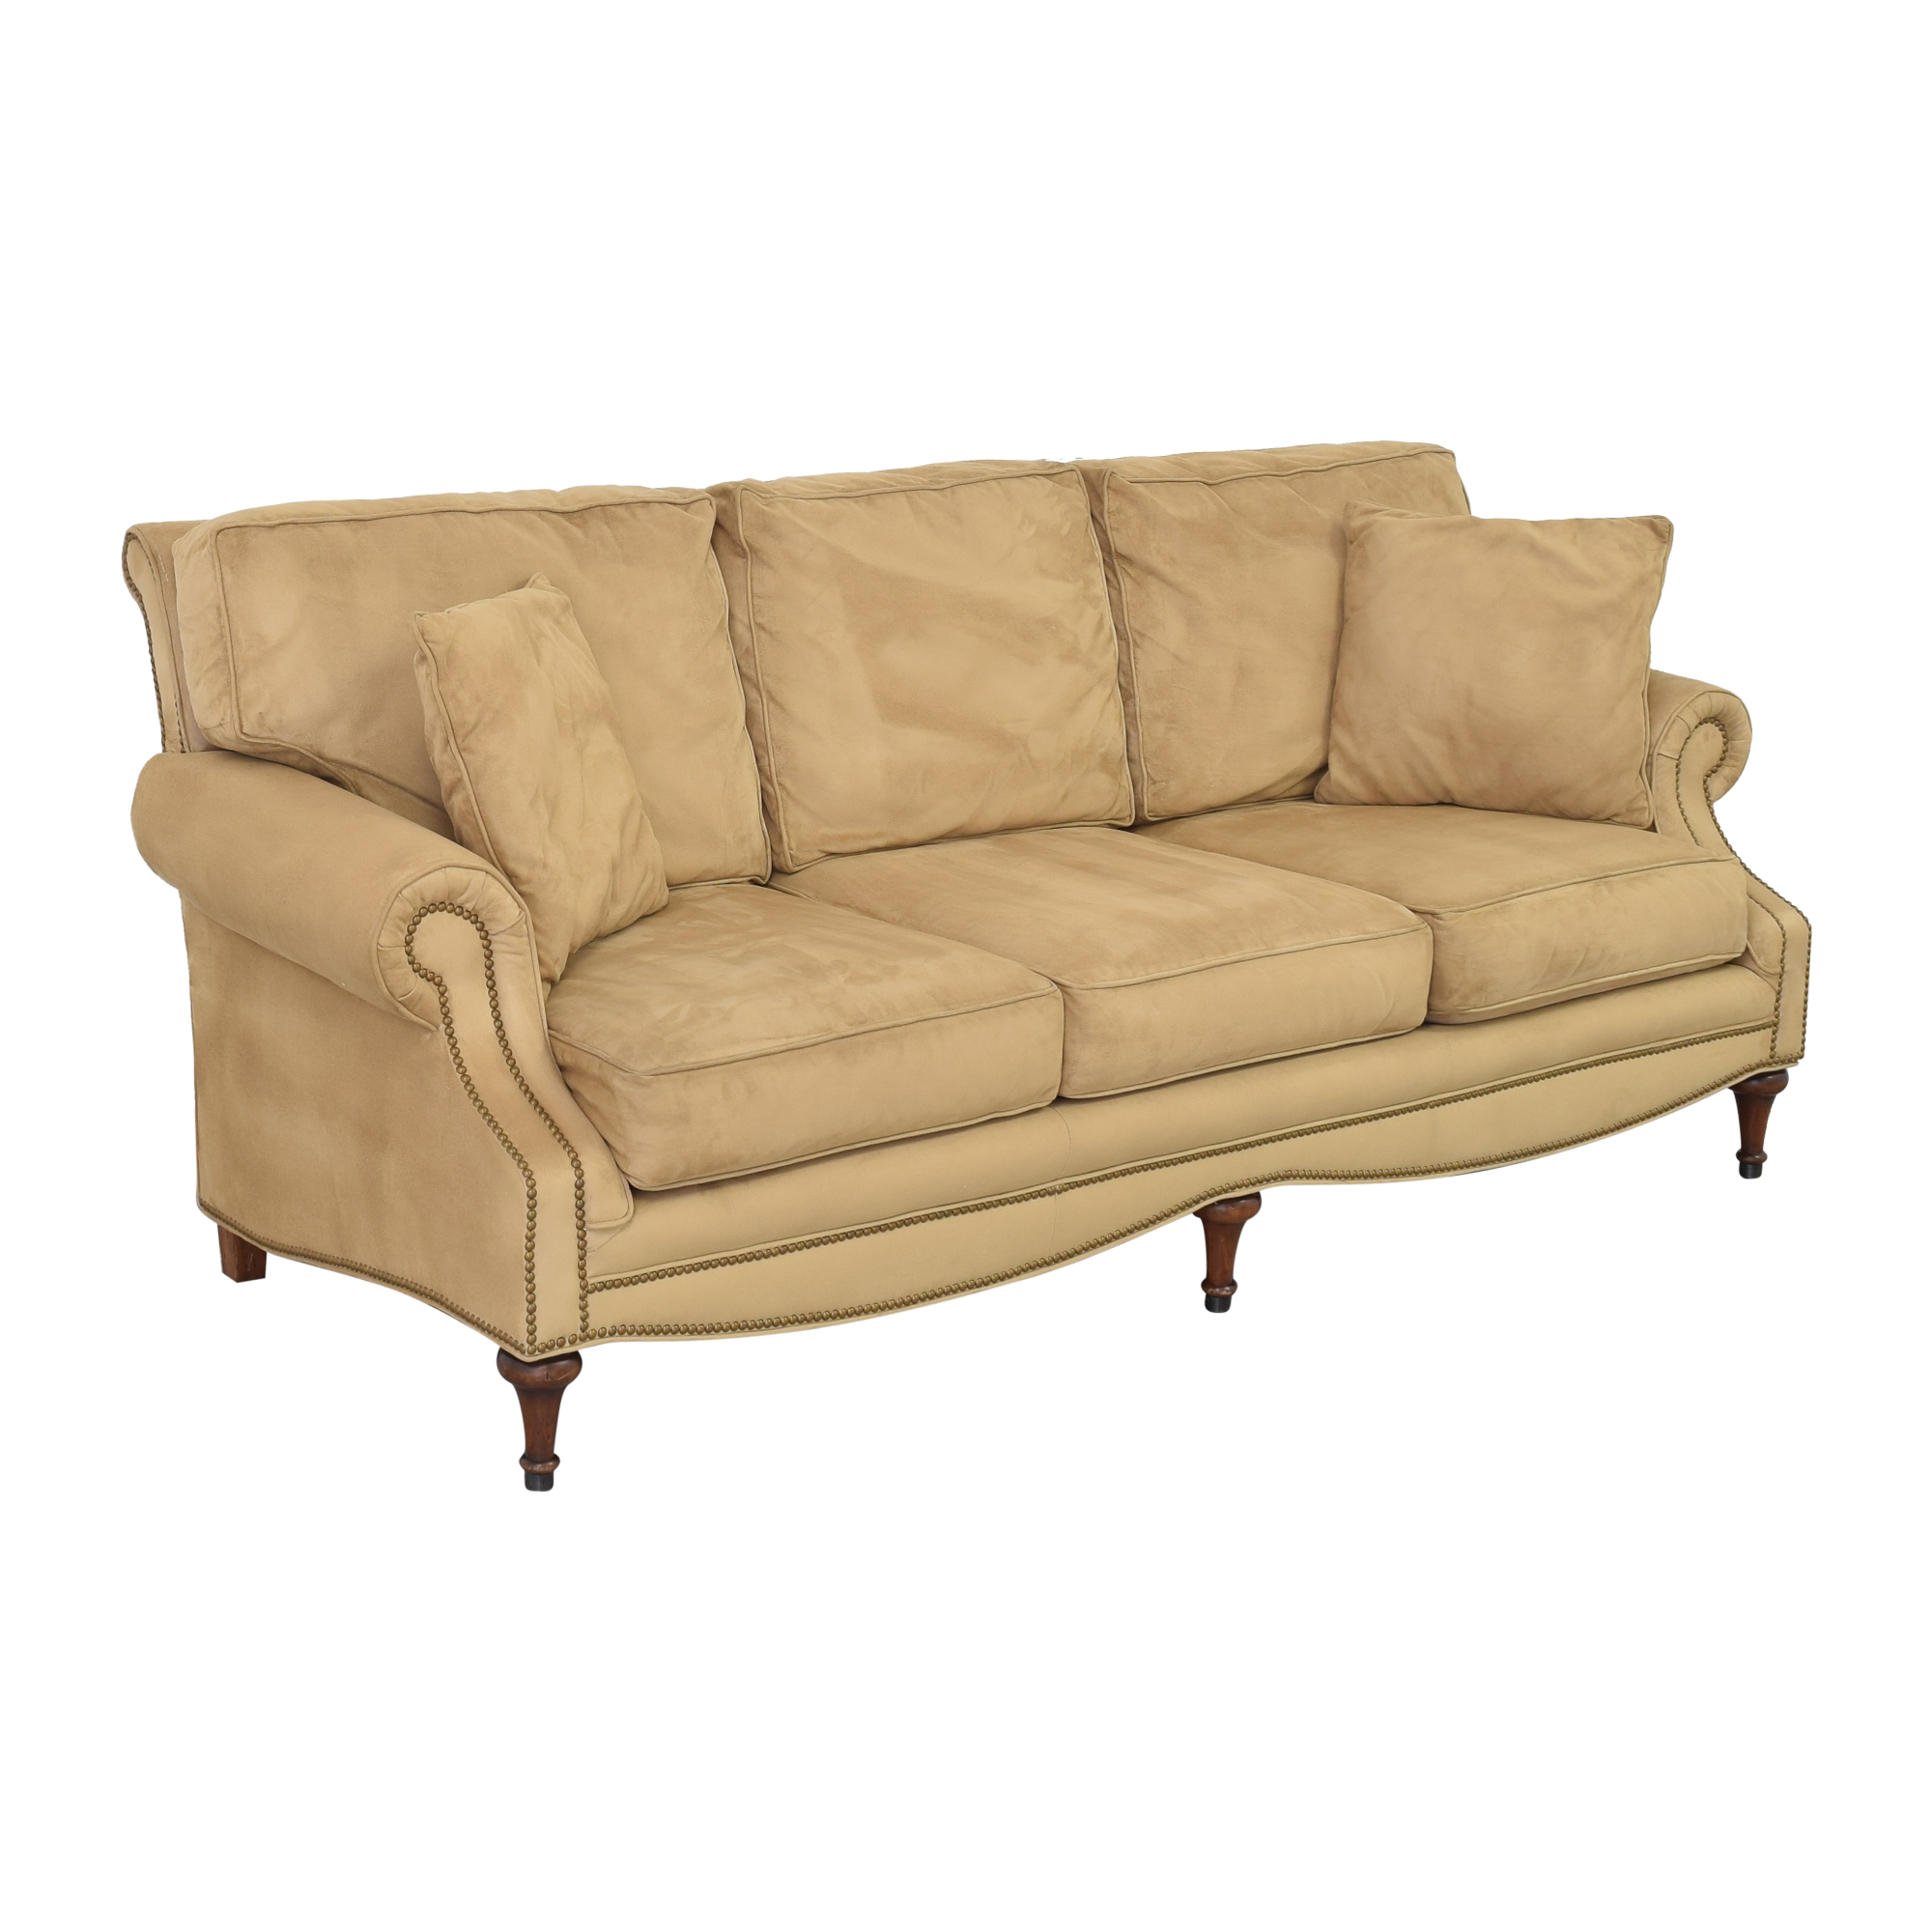 Harden Harden Roll Arm Sofa nj